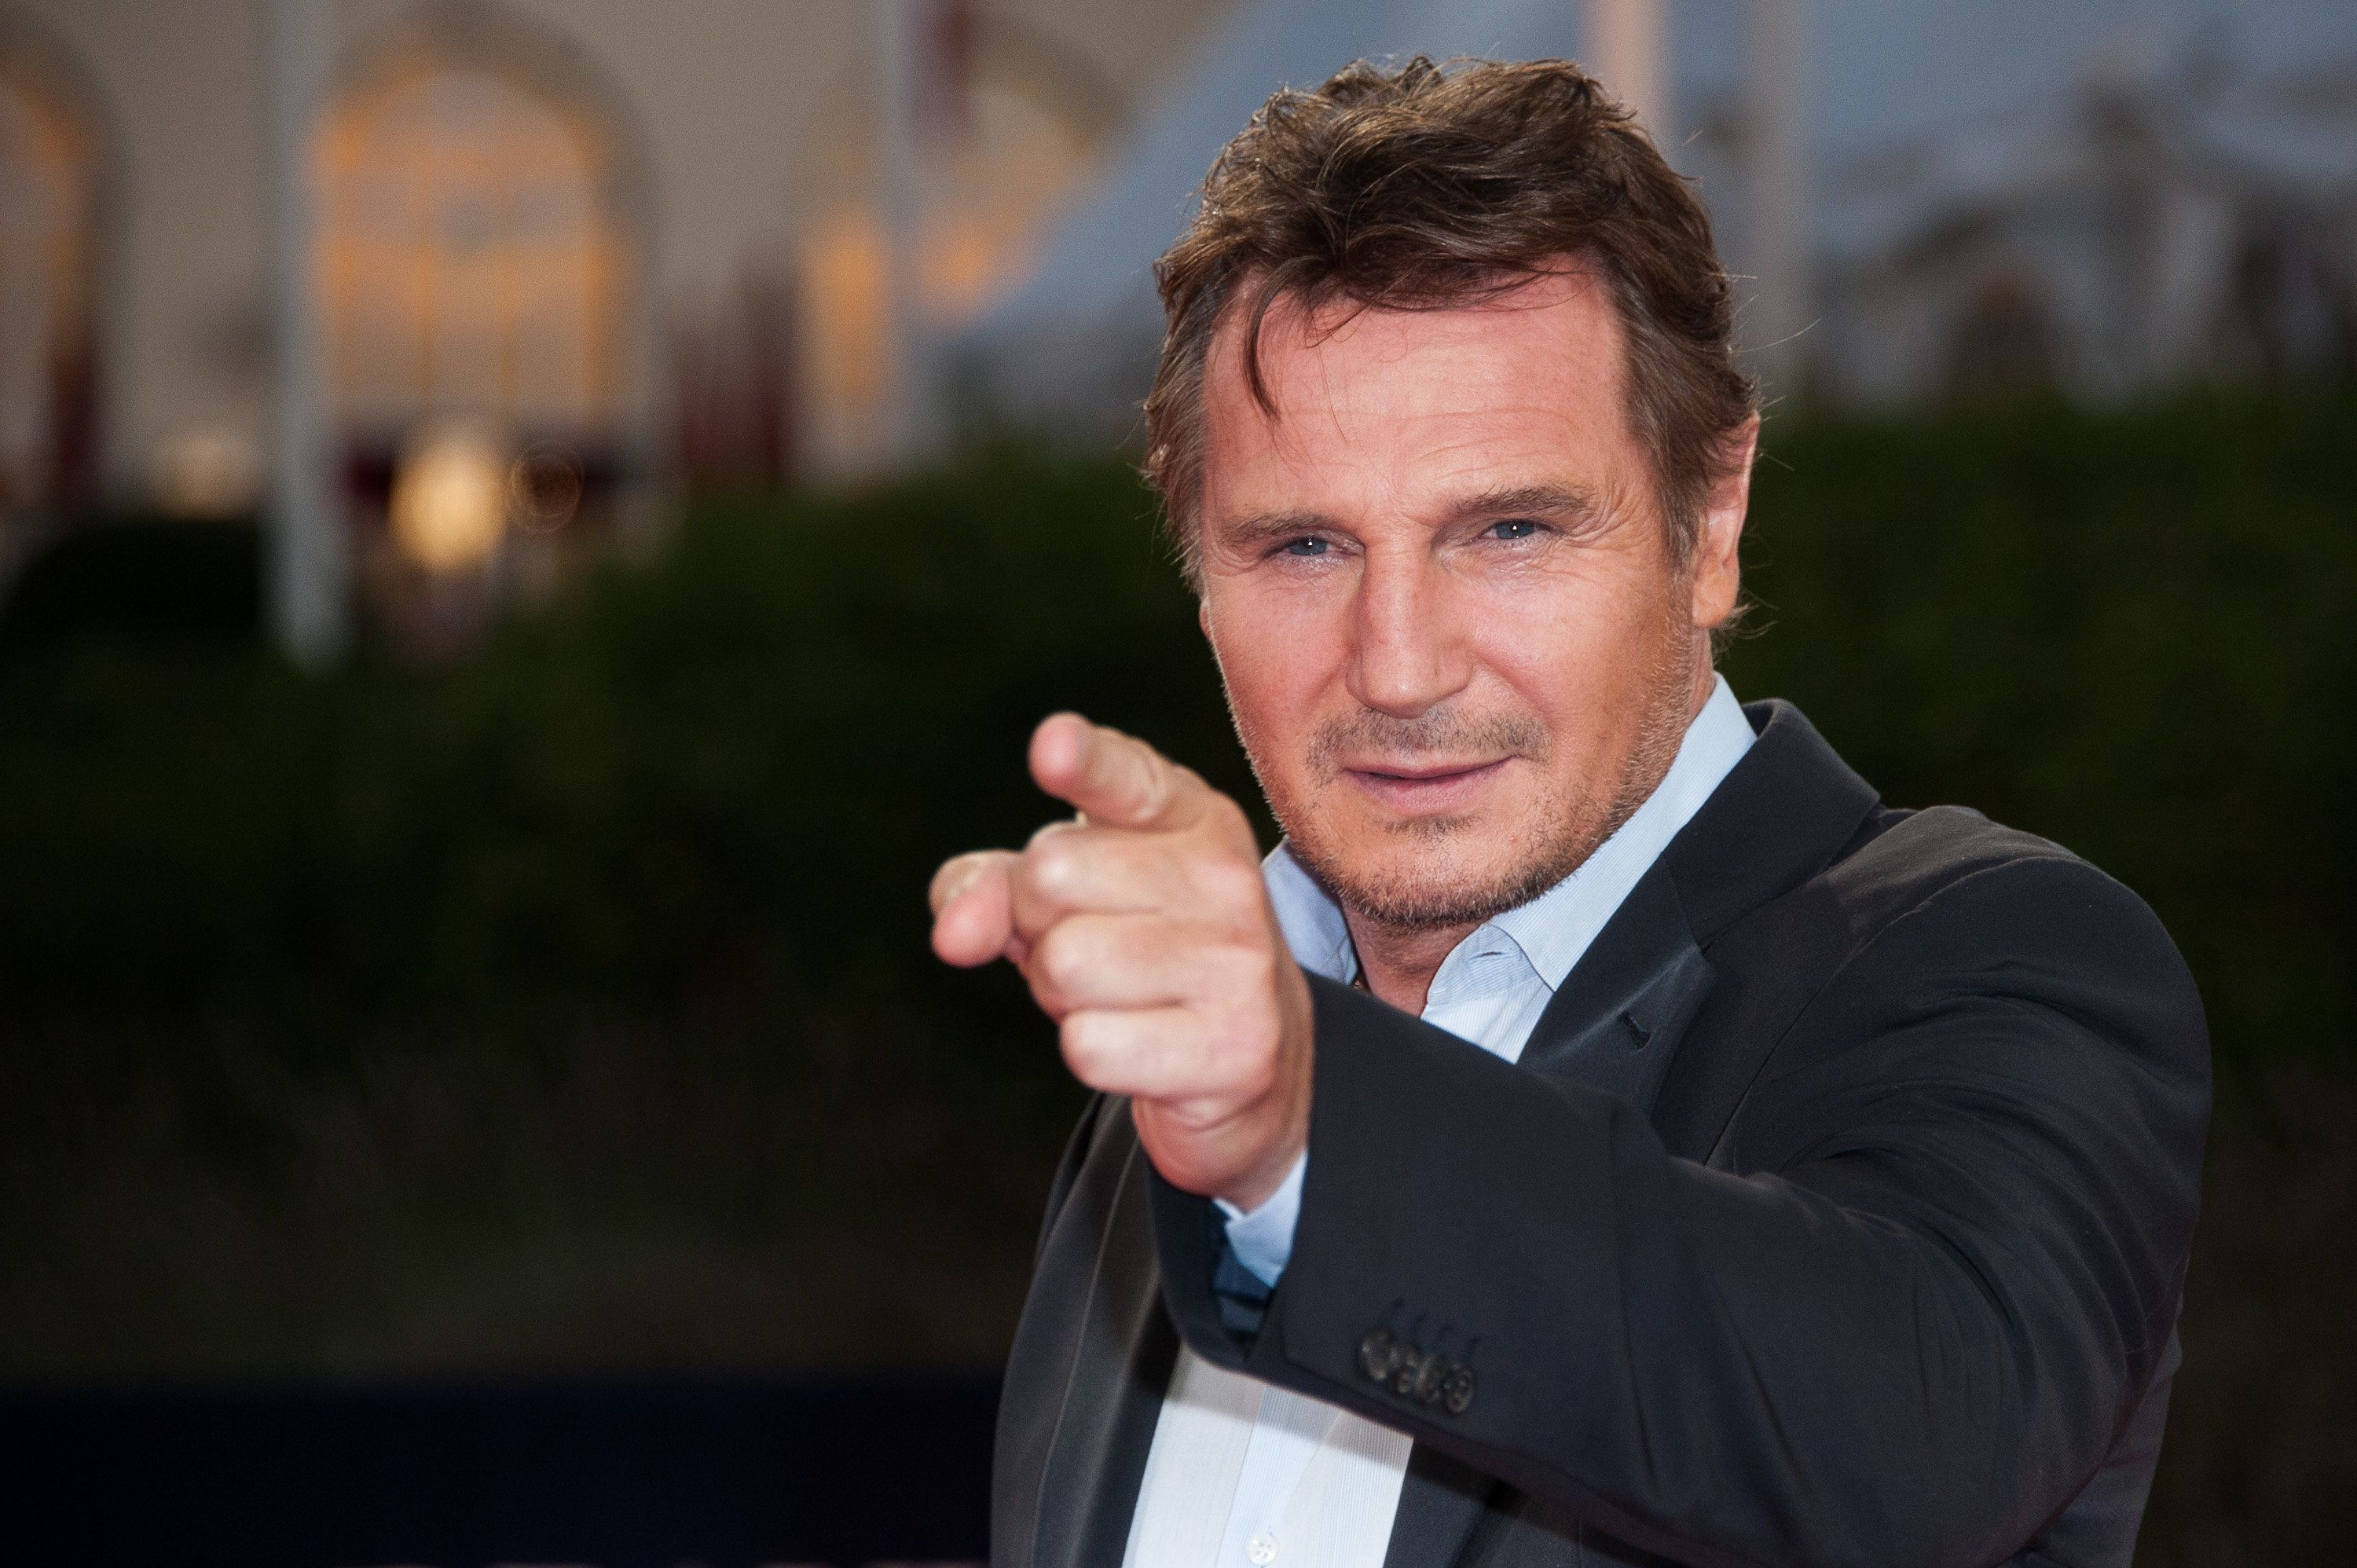 Don't Expect Liam Neeson To Star In Another 'Taken' Film Anytime